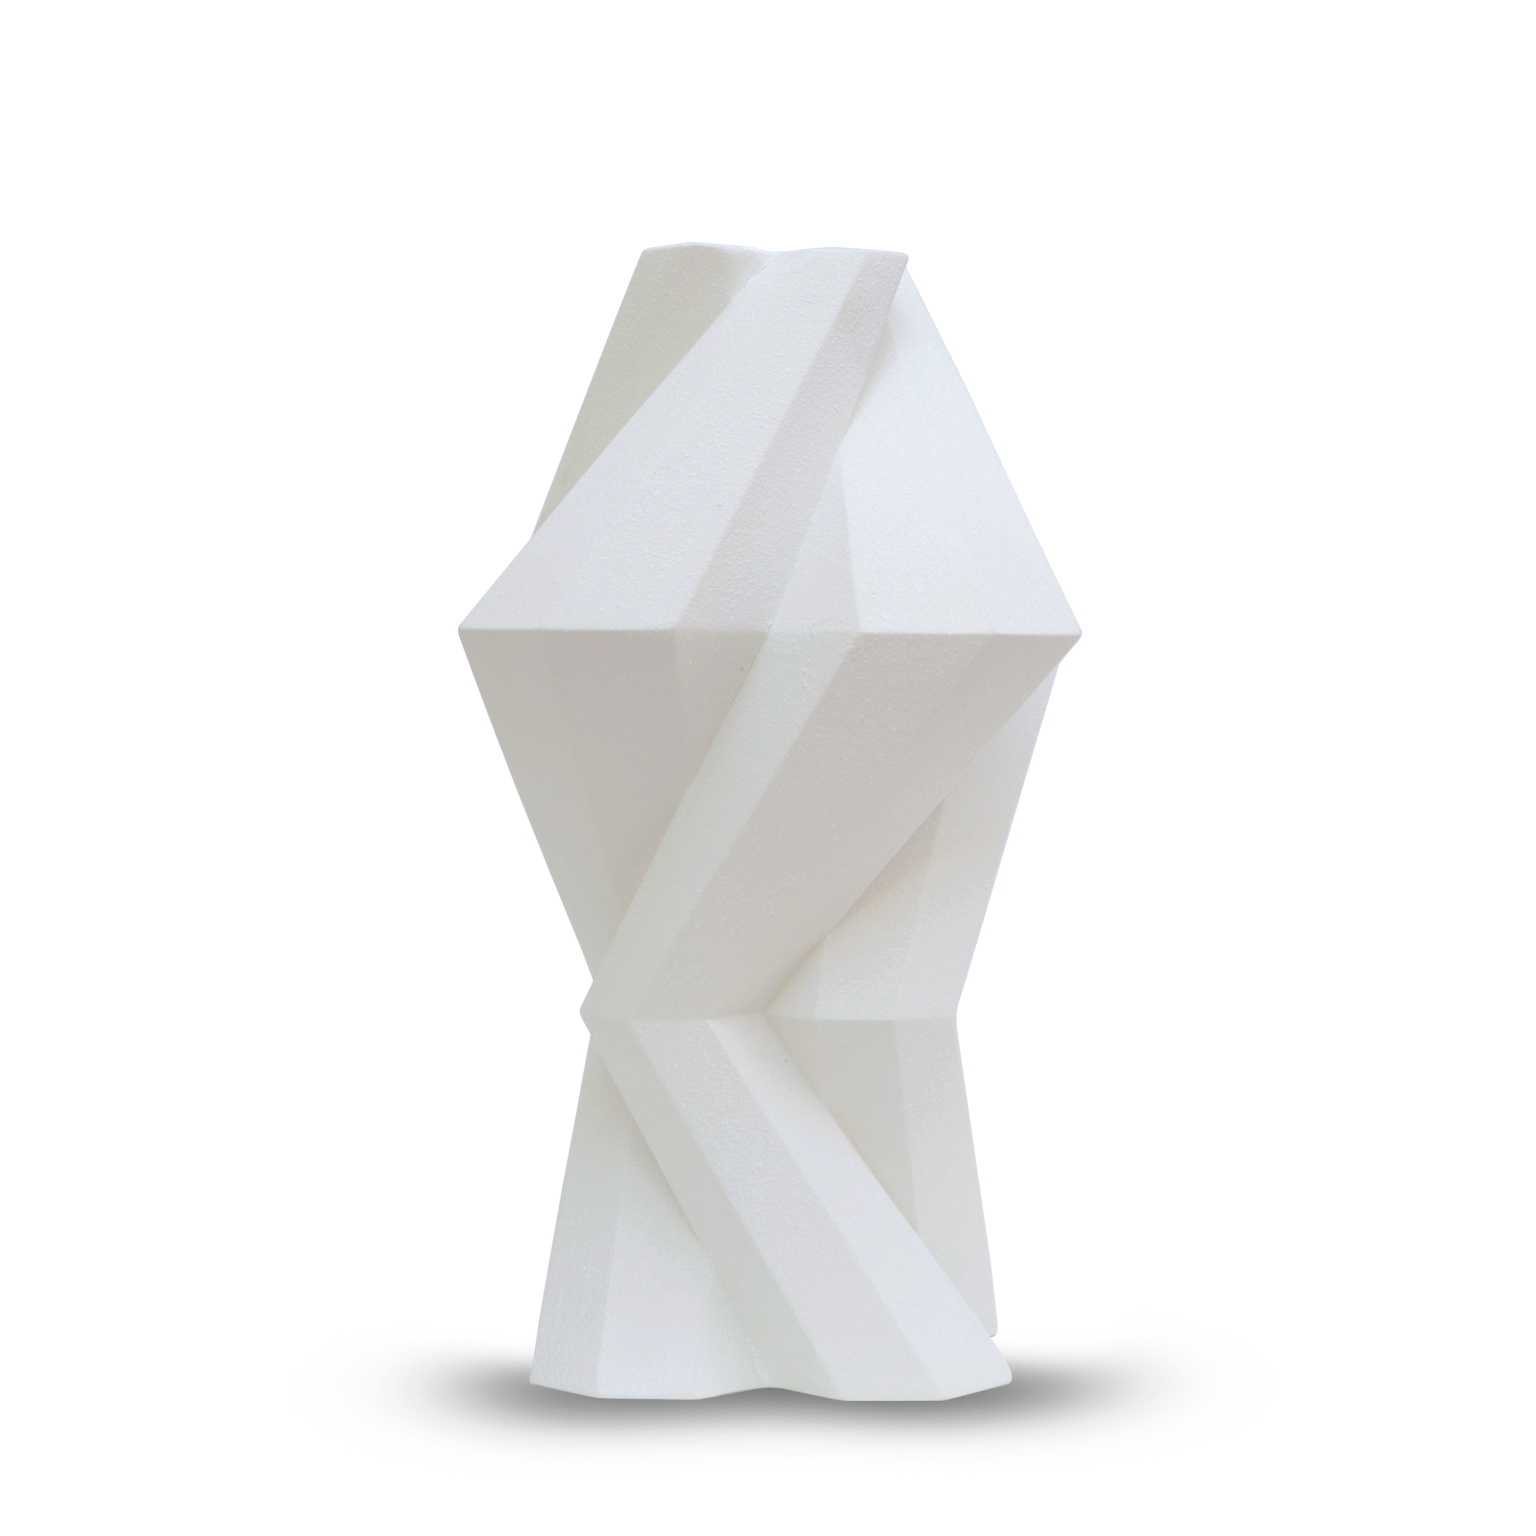 Fortress Column Vase Crackled White - <p>Designer Lara Bohinc explores the marriage of ancient and futuristic form in the new Fortress Vase range, which has created a more complex geometric and modern structure from the original inspiration of the octagonal towers at the Diocletian Palace in Croatia. The resulting hexagonal blocks interlock and embrace to allow the play of light and shade on the many surfaces and angles. There are four Fortress shapes: the larger Column and Castle (45cm height), the Pillar (30cm height) and the Tower vase (37cm height). These are hand made from ceramic in a small Italian artisanal workshop and come in three finishes: dark gold, bronze and speckled white.</p>    Matter of Stuff